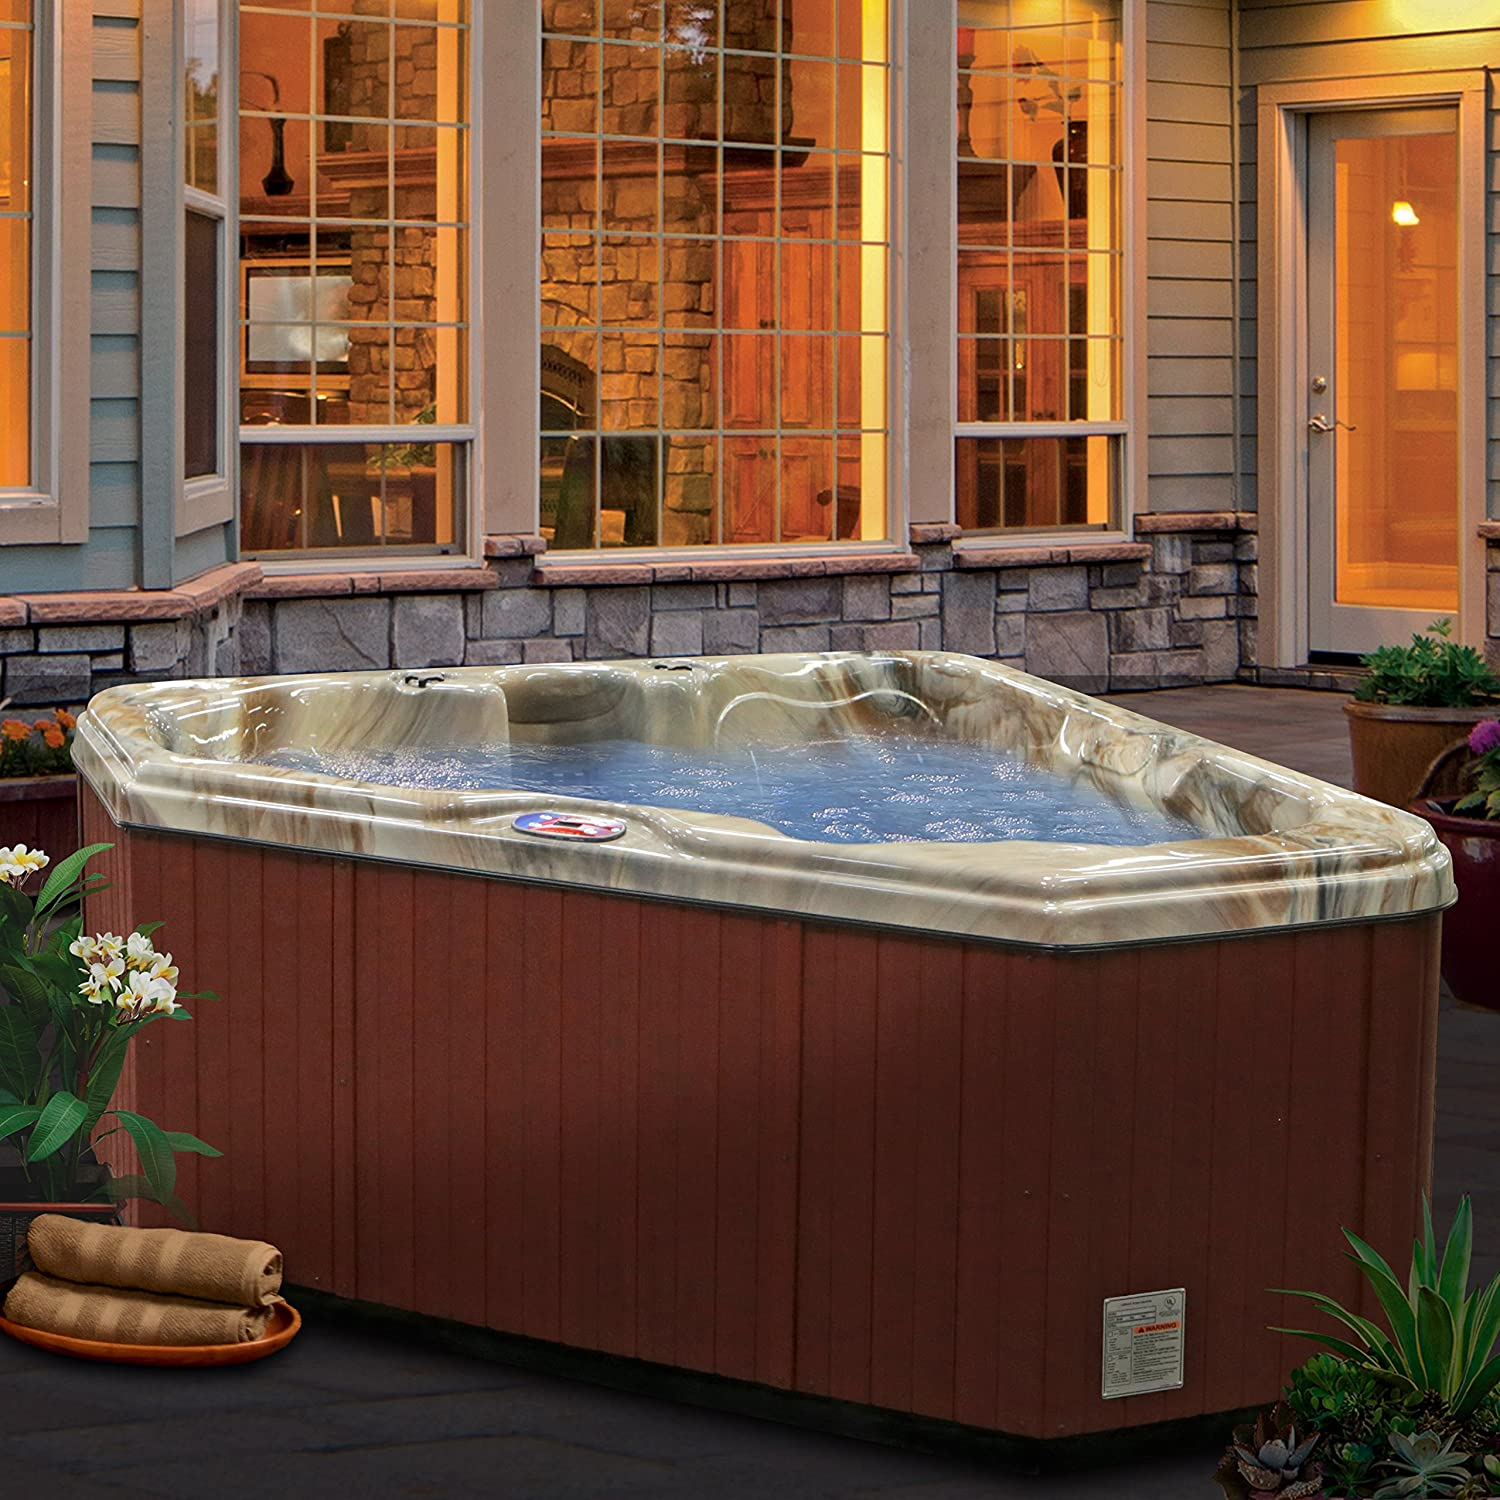 American Spas AM-628TM 2-Person 28-Jet Triangle Spa, Plug-In-Play ...